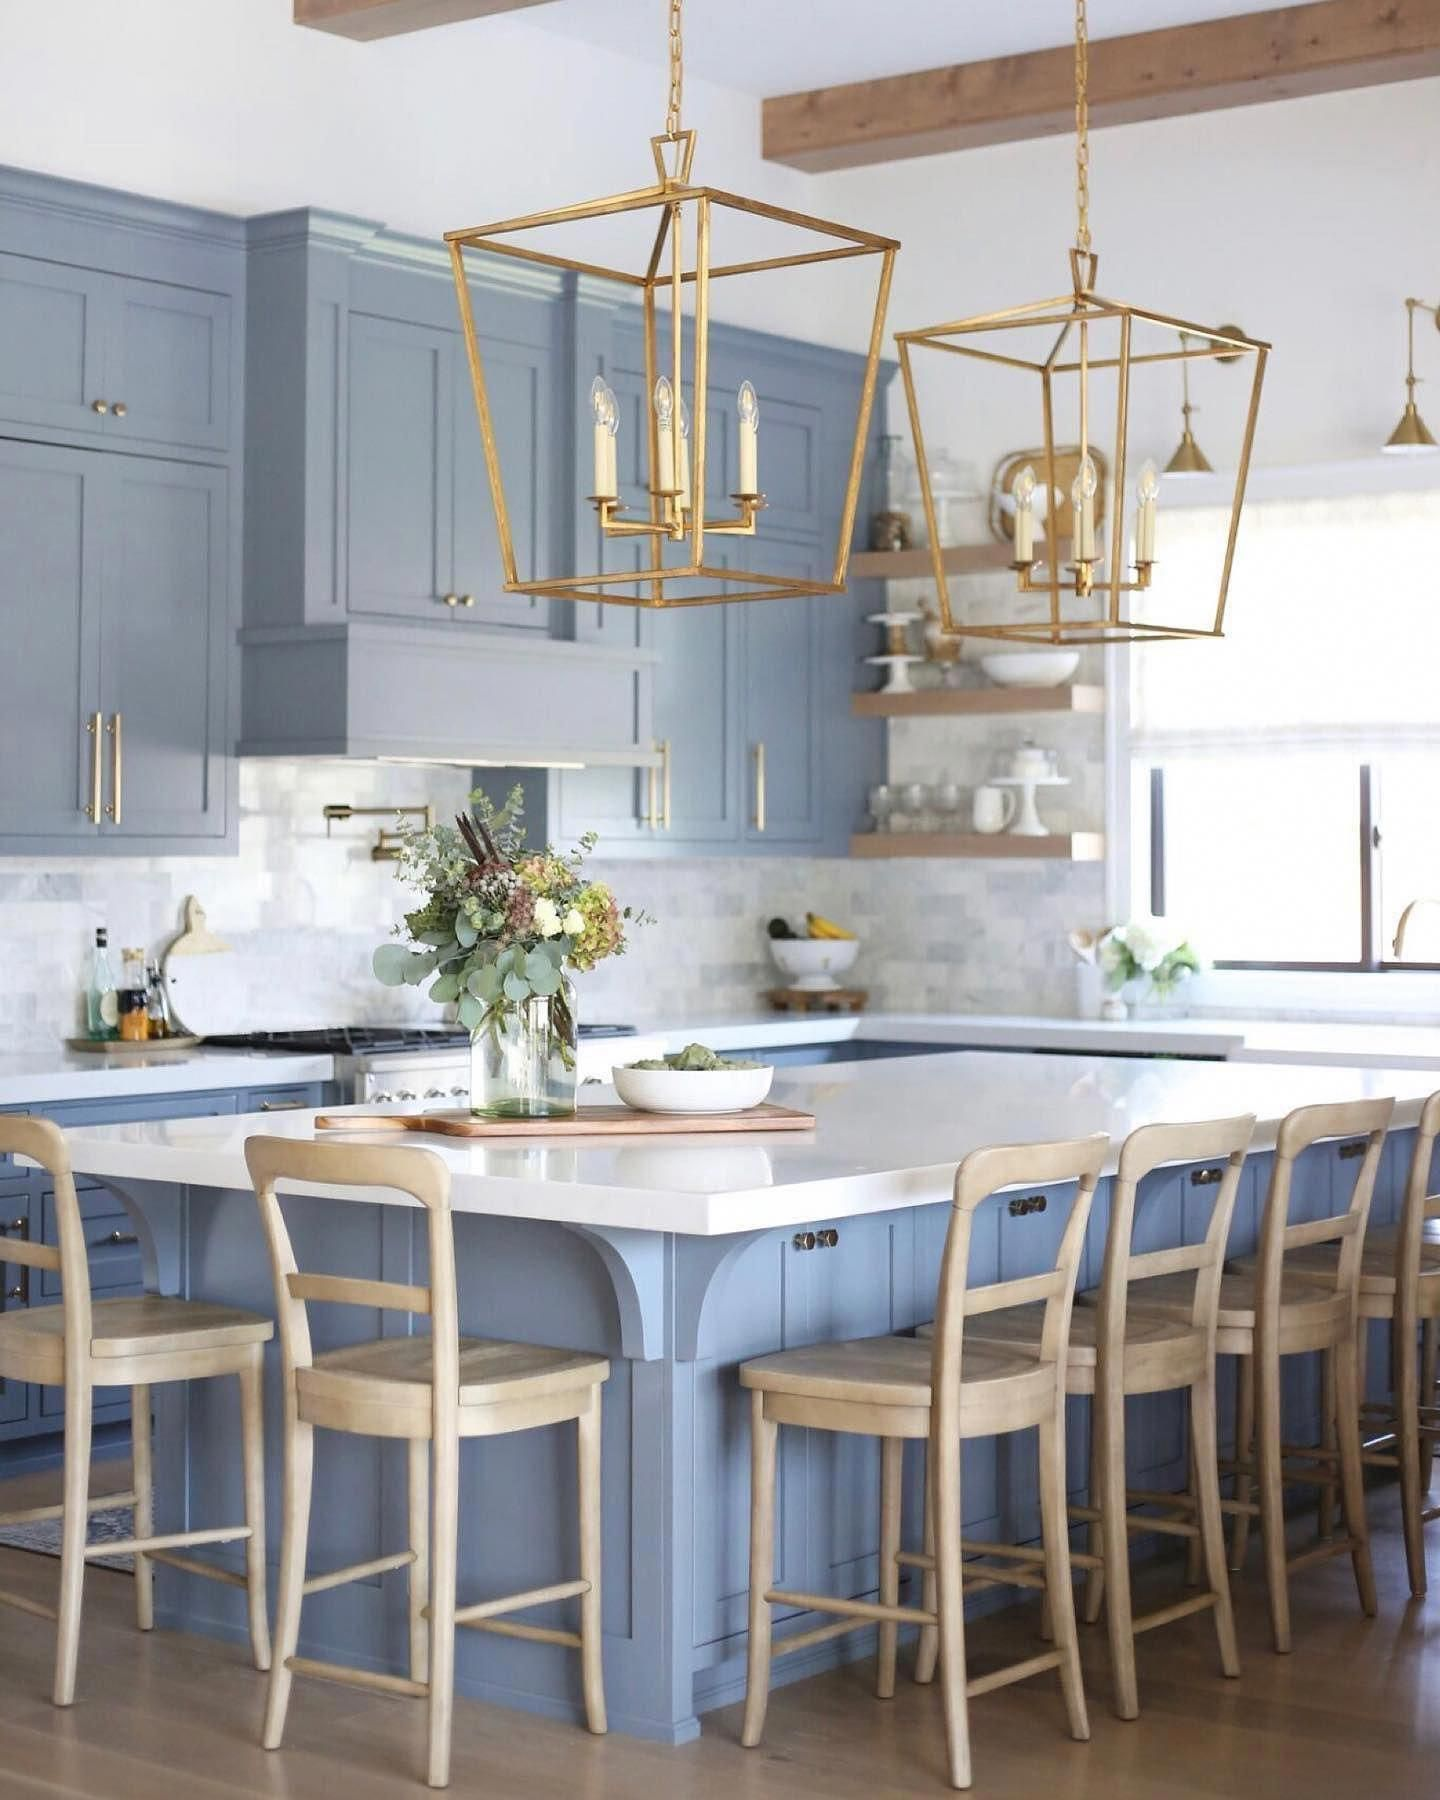 Charming Rustic Kitchen Ideas And Inspirations: Kitchen Island Lanterns In 2020